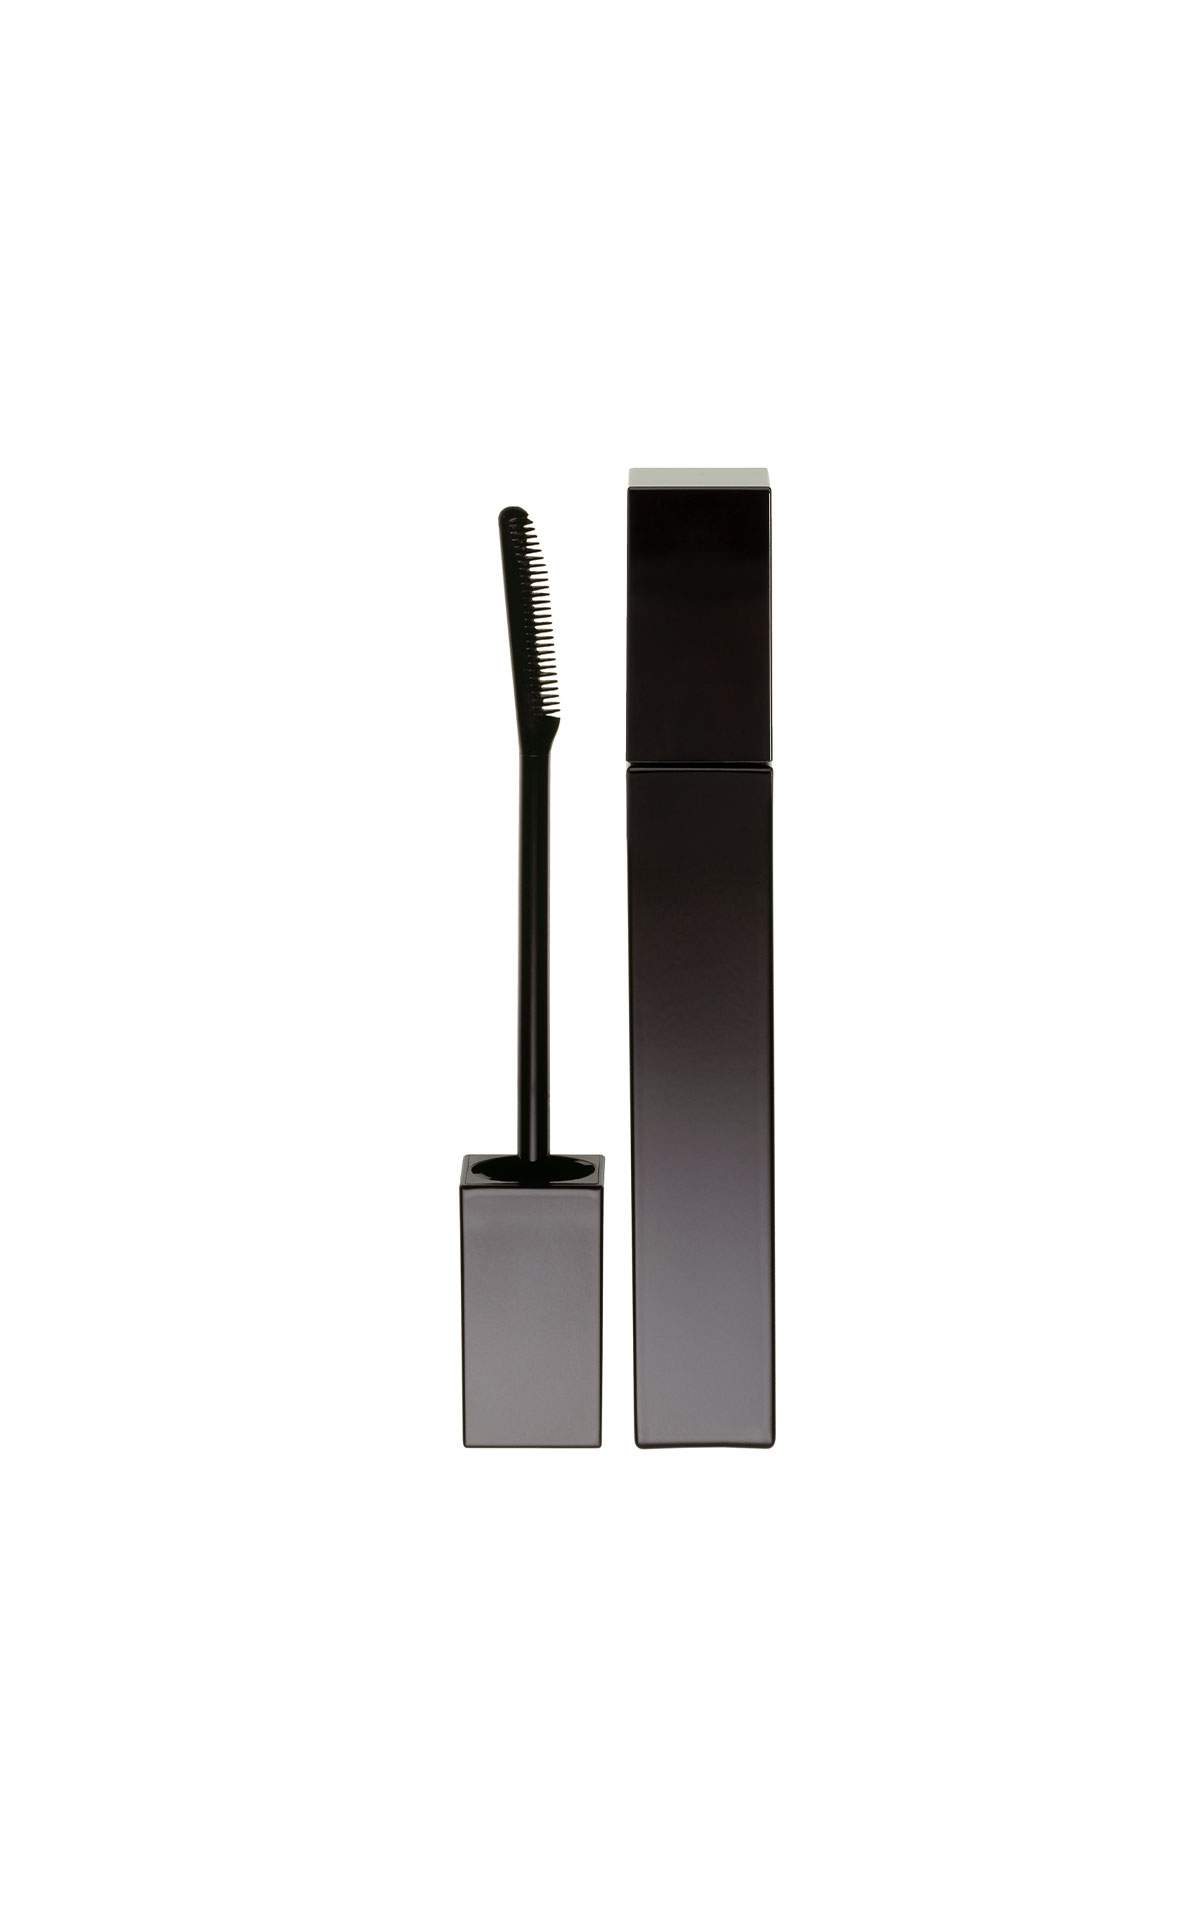 Beauté Prestige International Serge Lutens Mascara cils cellophane from Bicester Village